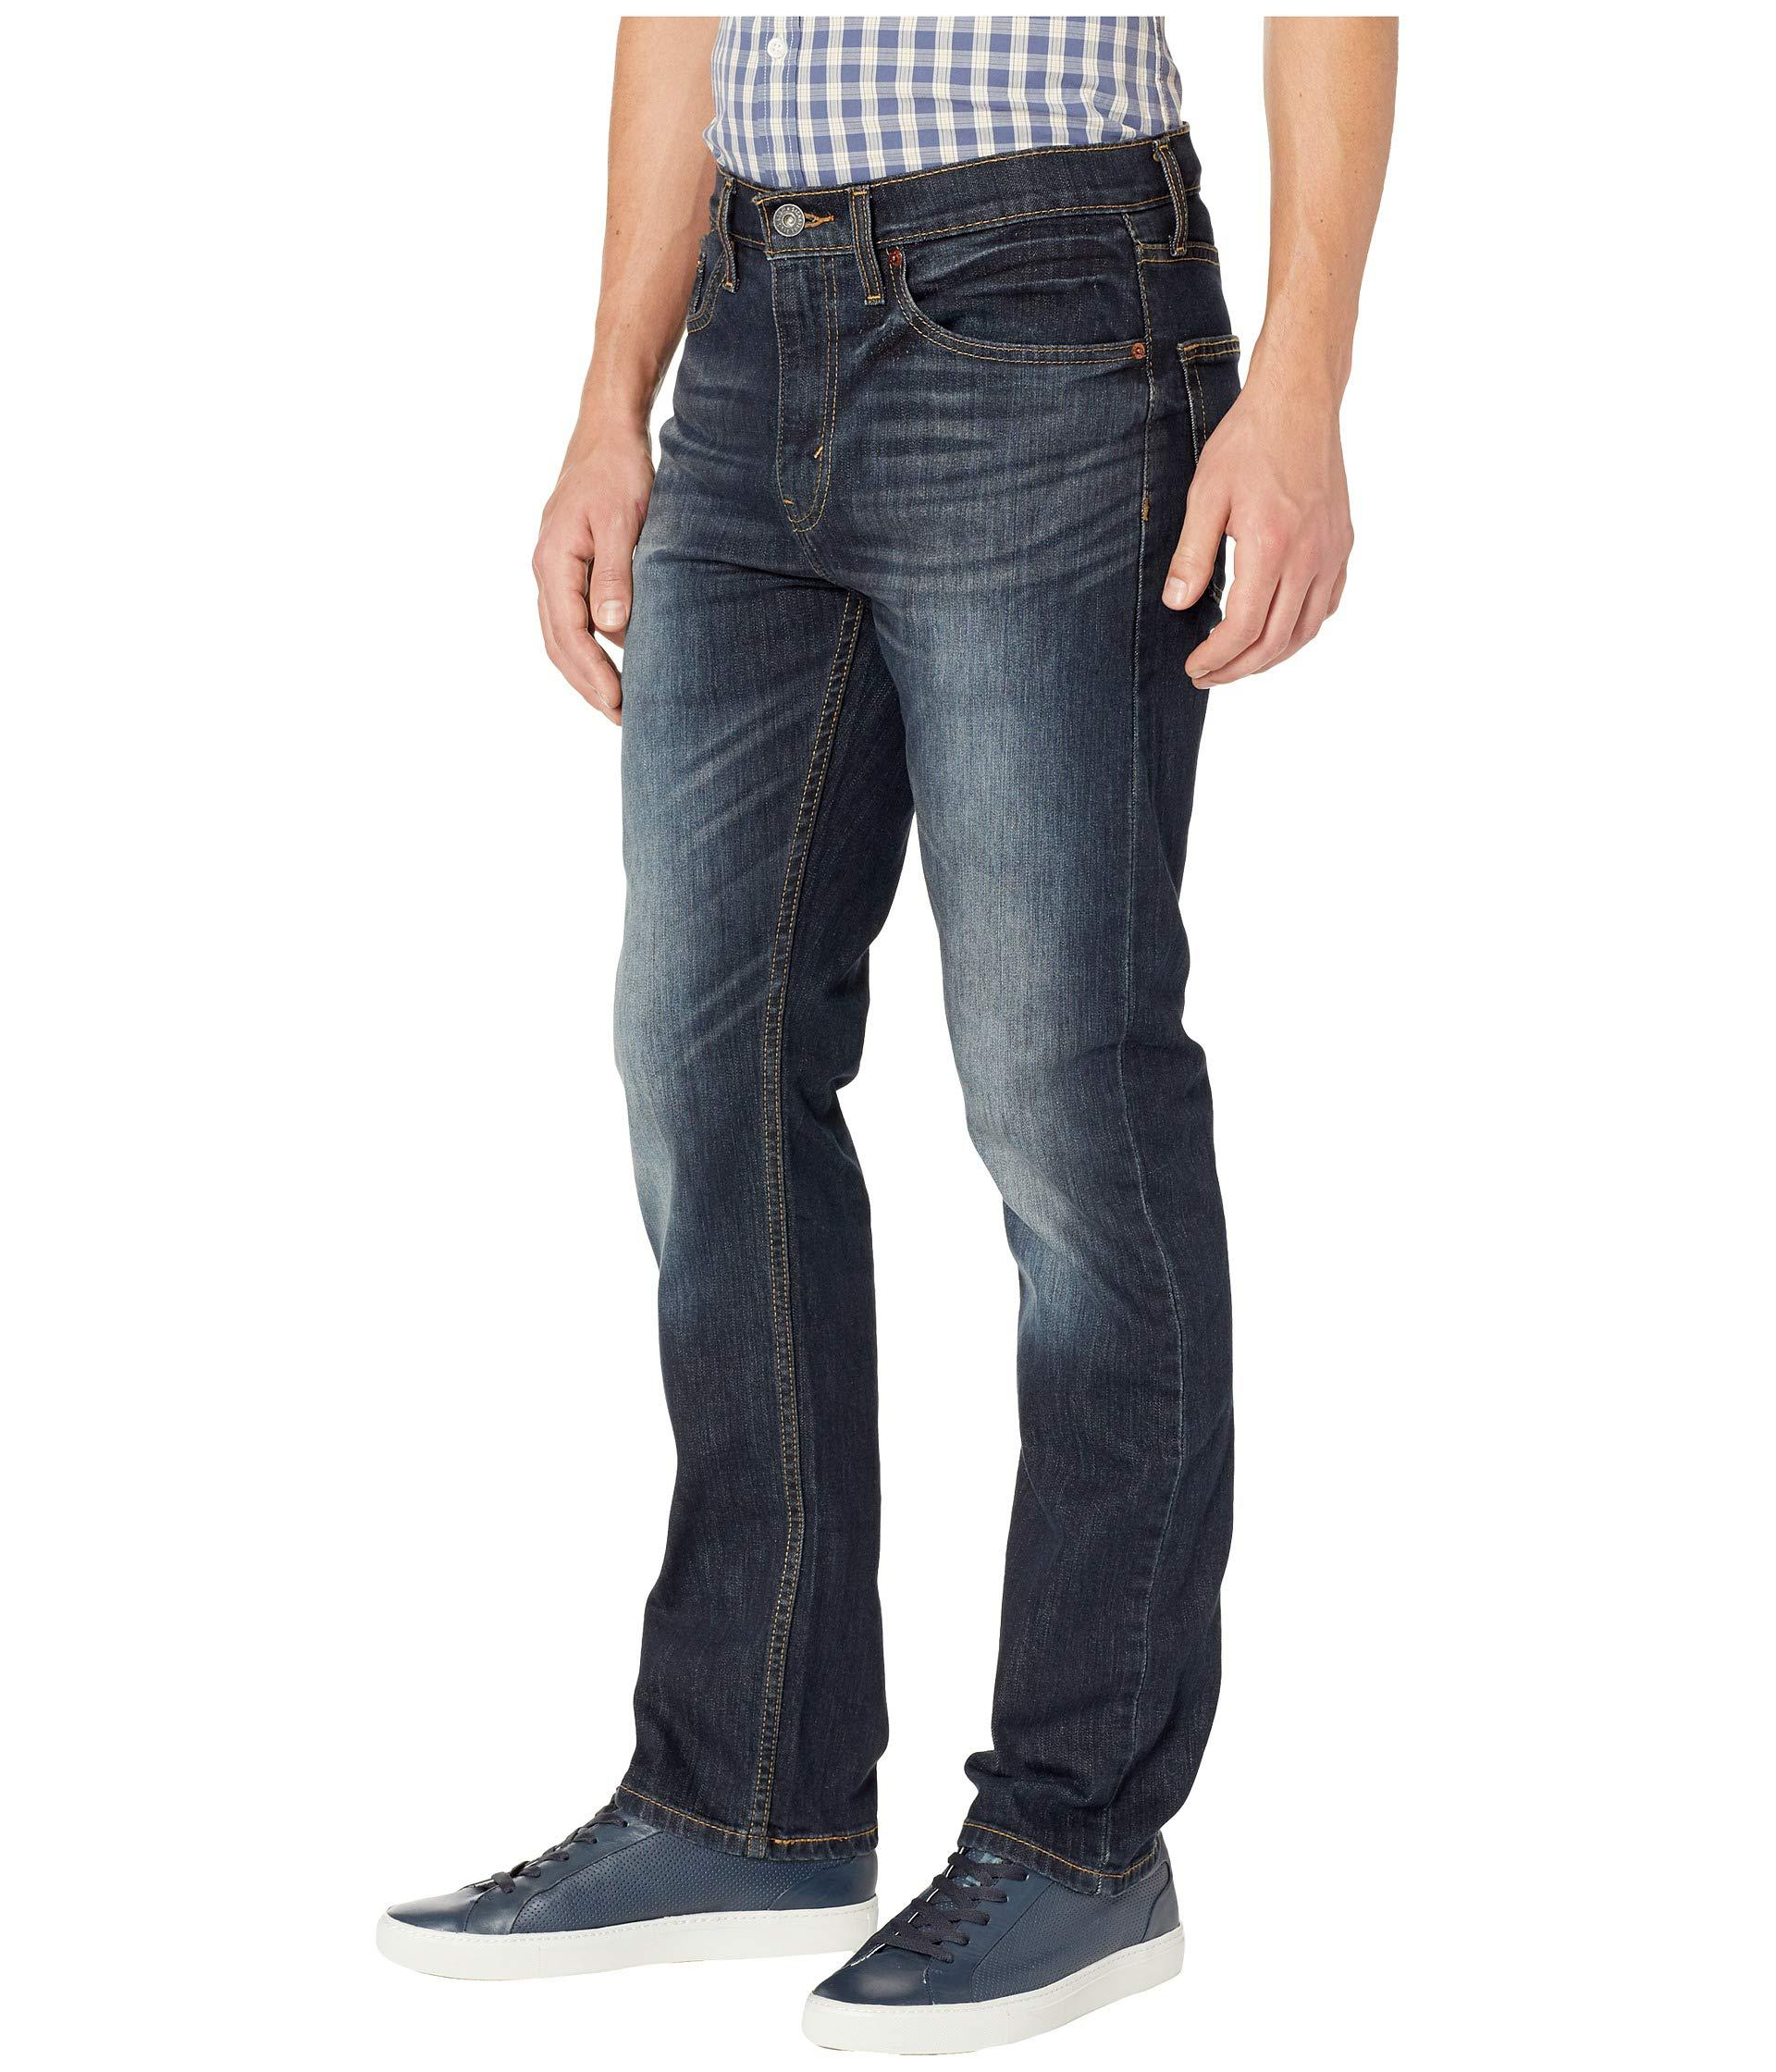 f53bc8ae Lyst - Signature by Levi Strauss & Co. Gold Label Slim Straight Fit Jeans  in Blue for Men